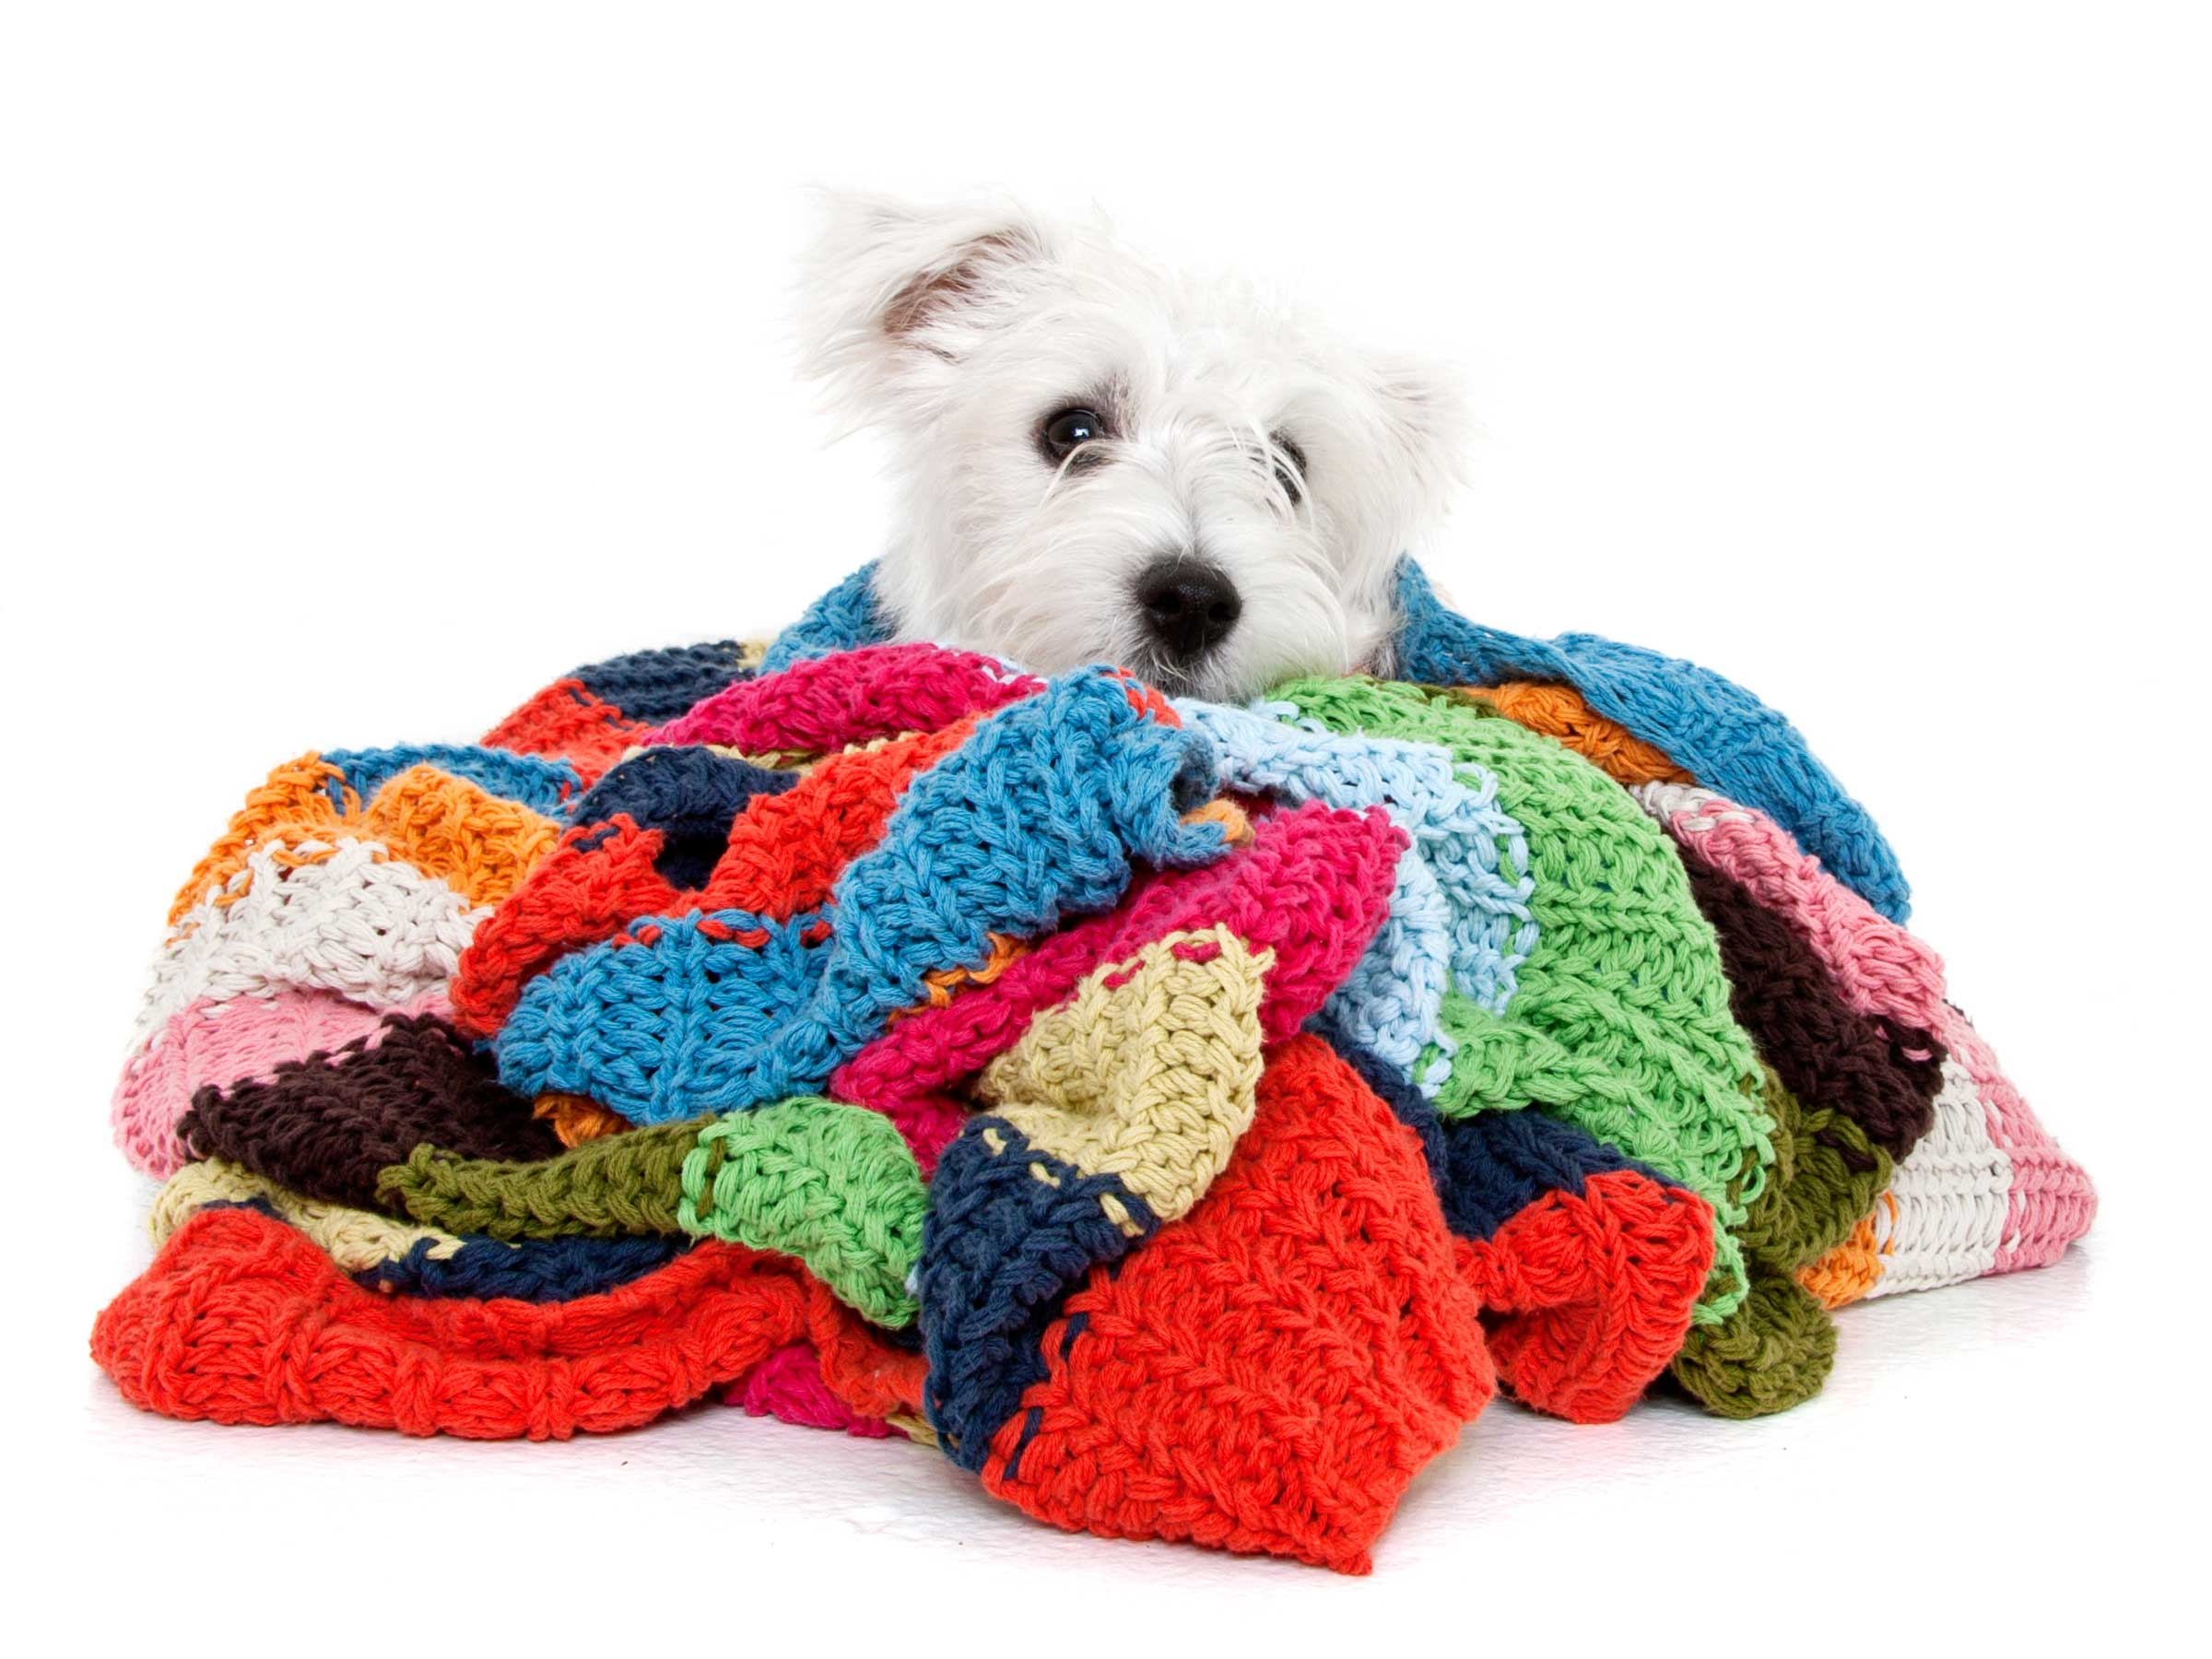 10-Pets-Dog-White-Colours-Comfort-Bed-Philip-Murray-Photography-Dublin